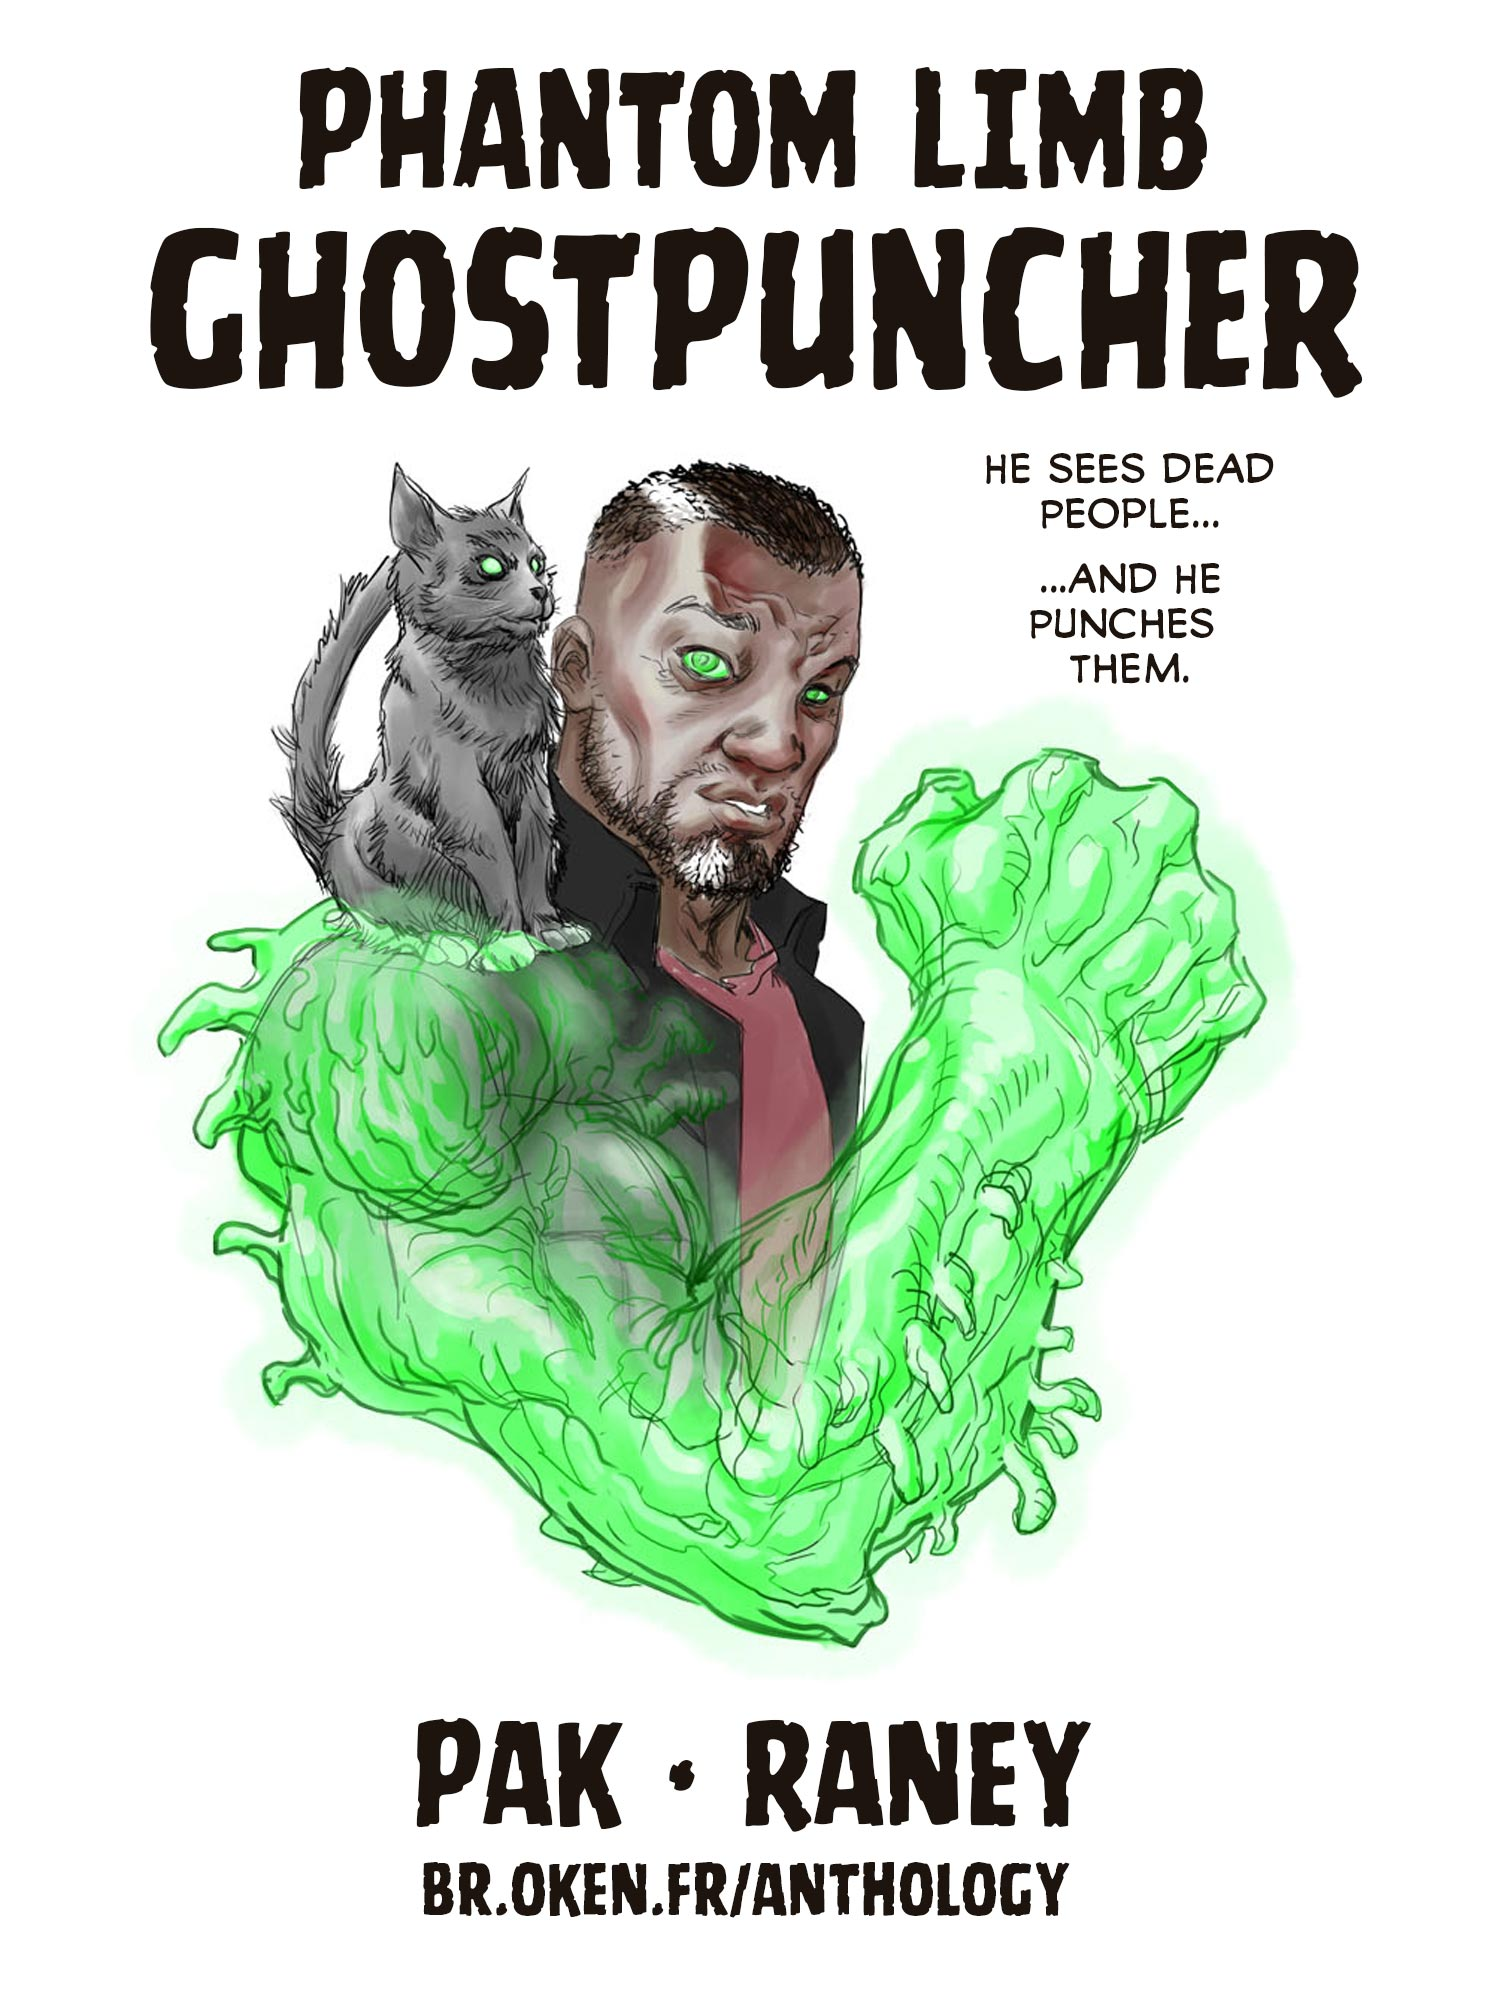 Greg Pak and Tom Raney's Phantom Limb Ghostpuncher and Art Jam in the Broken Frontier Anthology